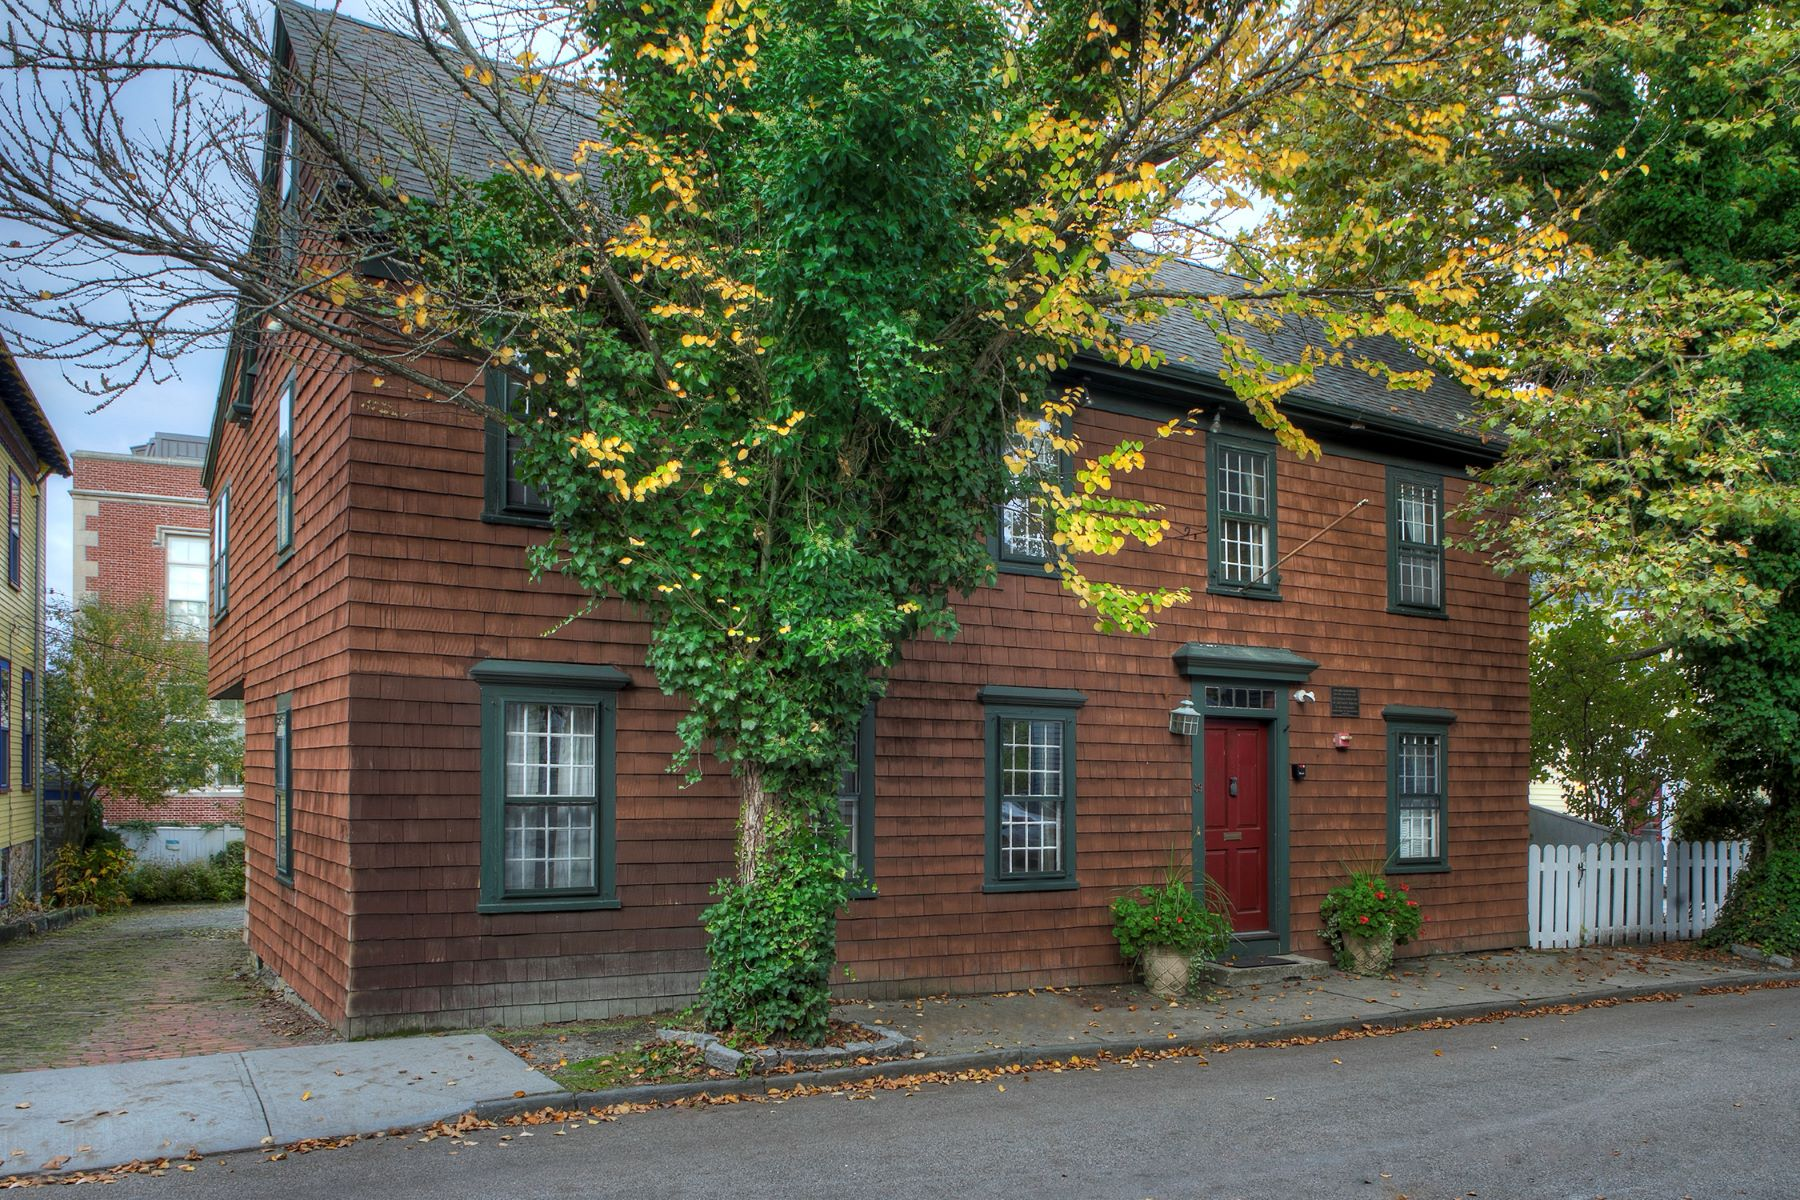 Single Family Homes for Sale at The Melville House 39 Clarke Street Newport, Rhode Island 02840 United States